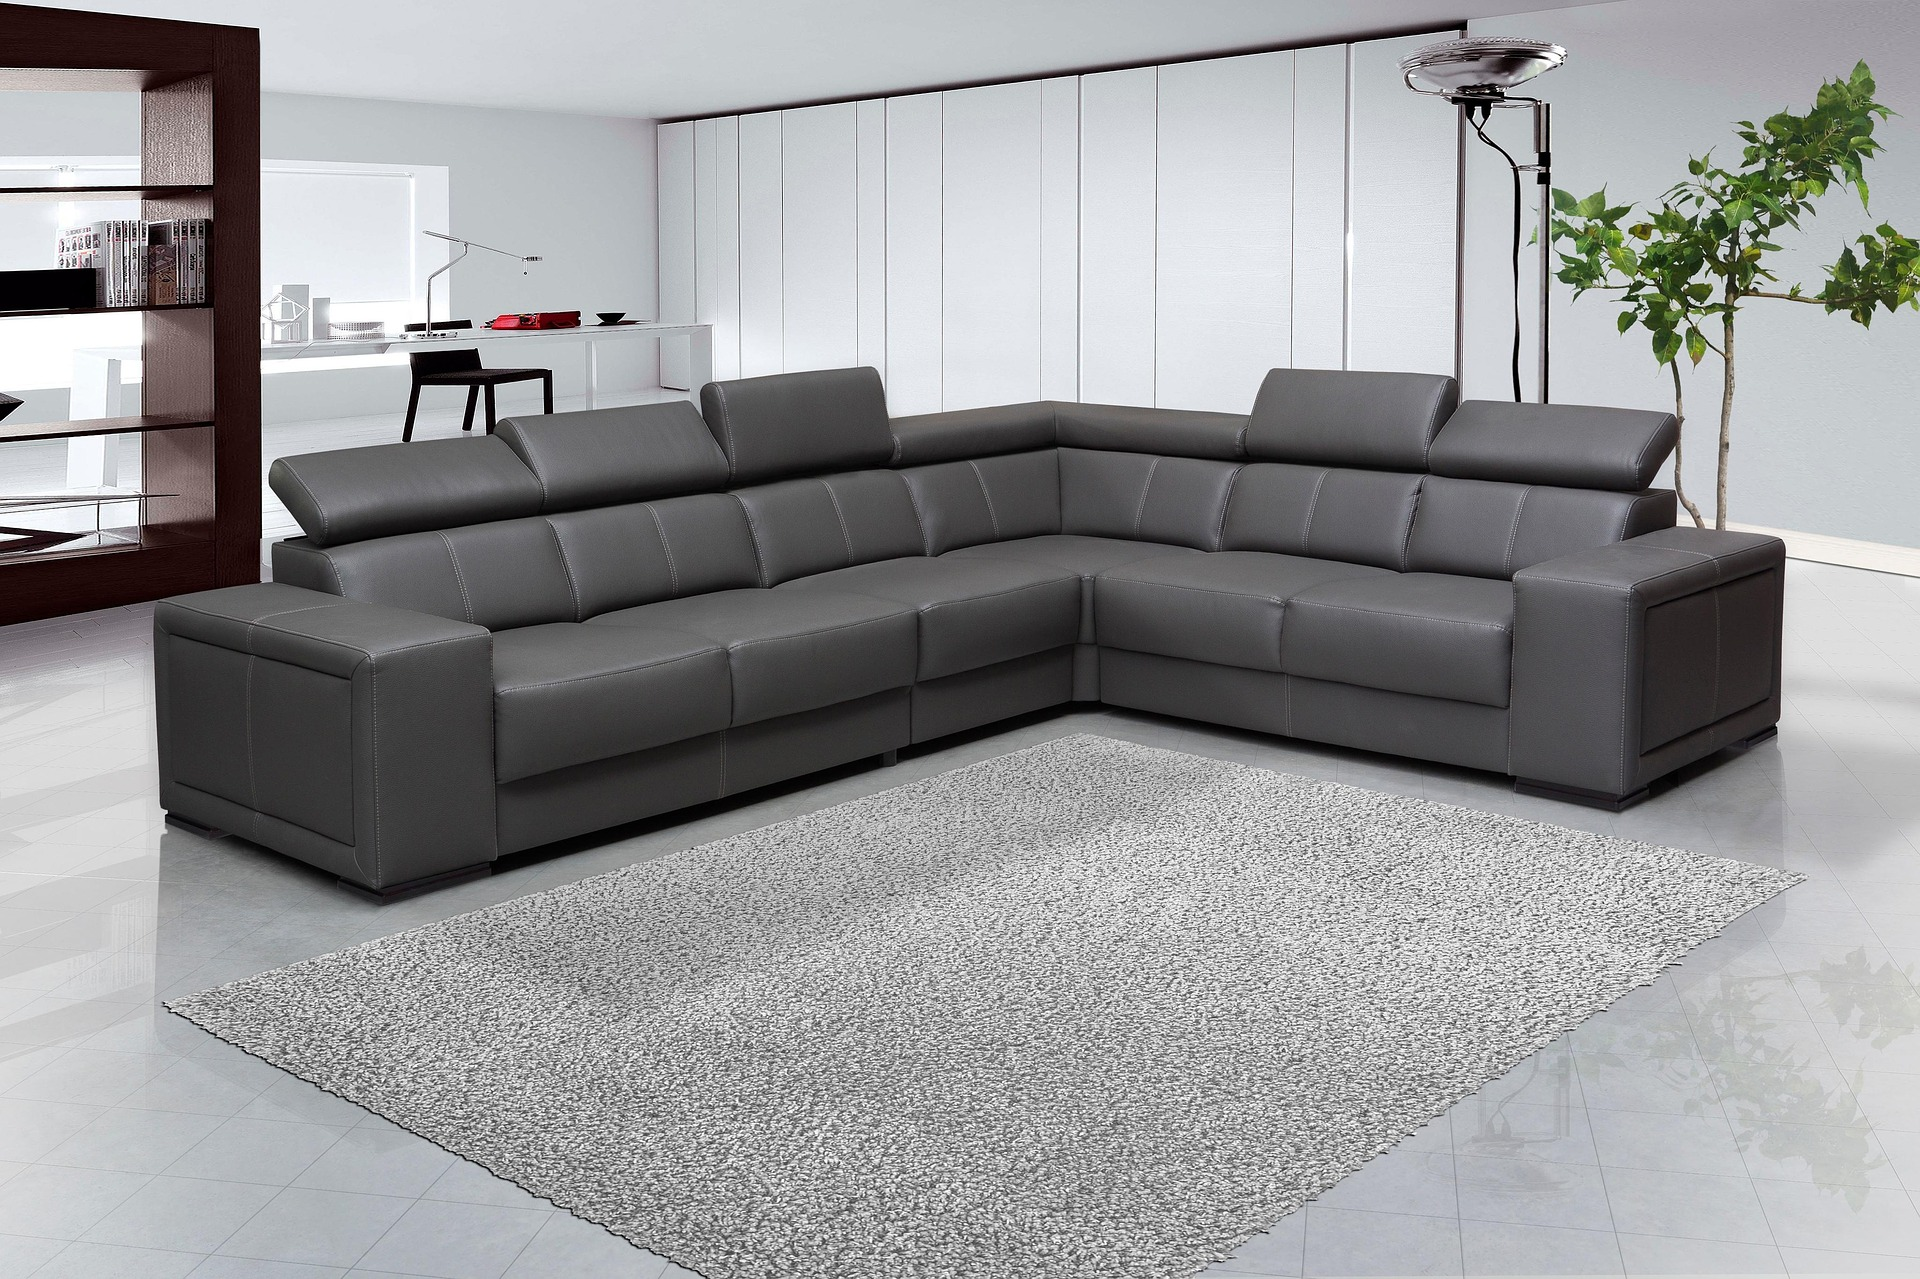 With its elegant design, the sectional sofa bed is one of its kind.